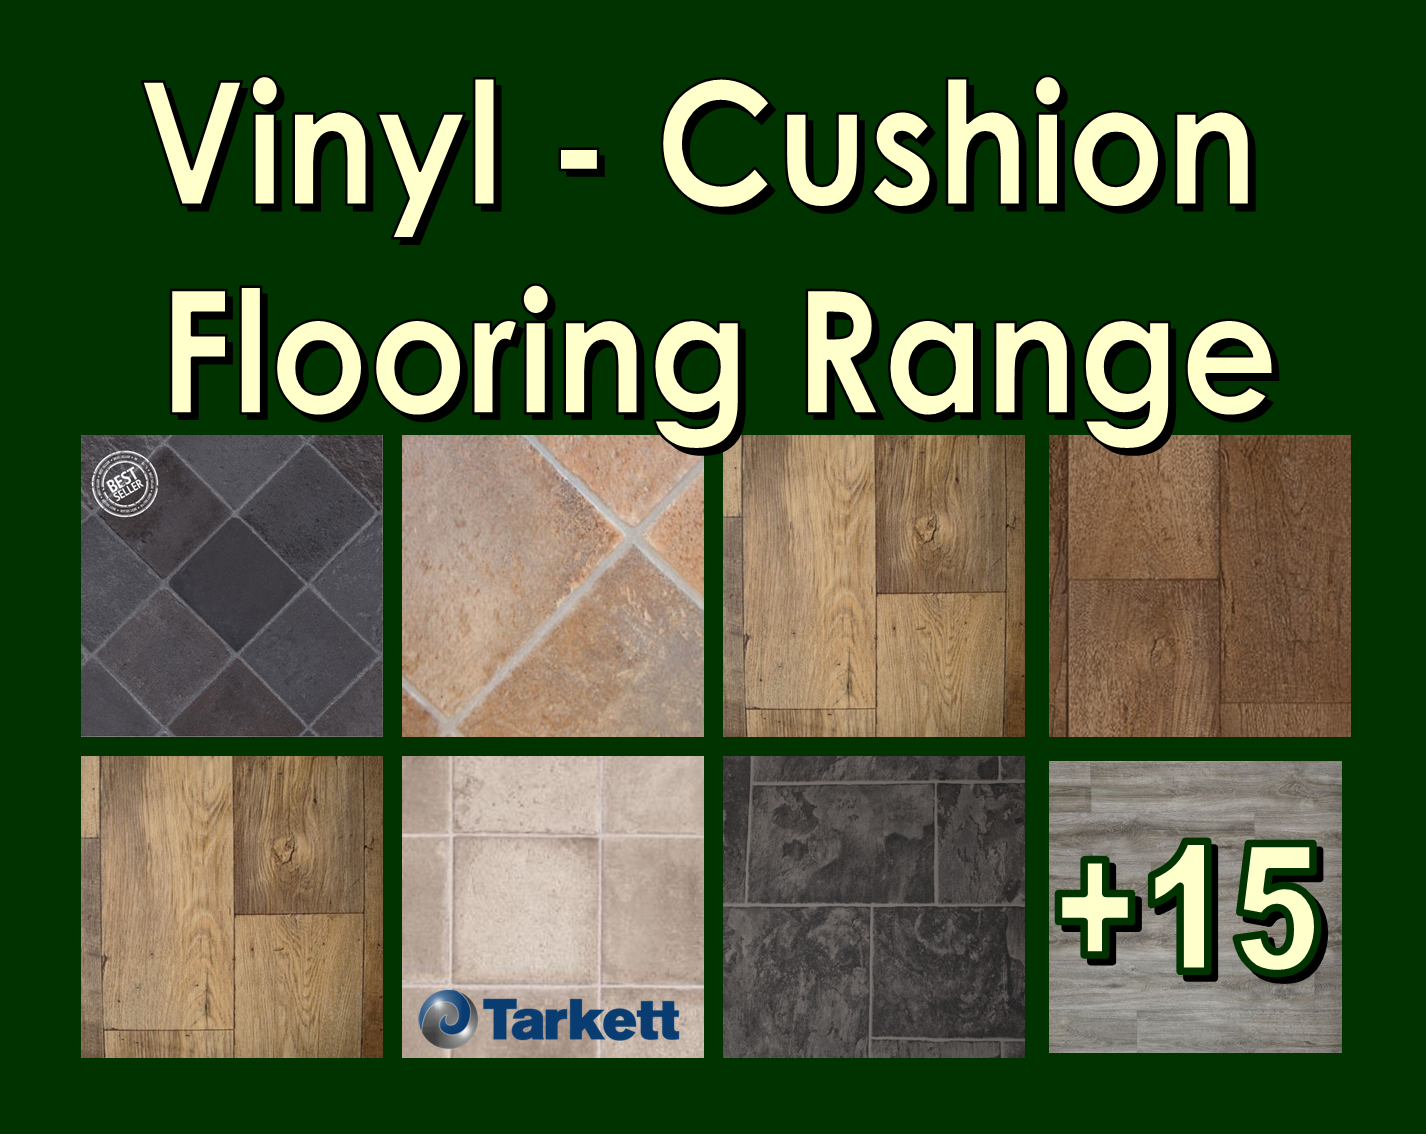 View Vinyl Flooring Range